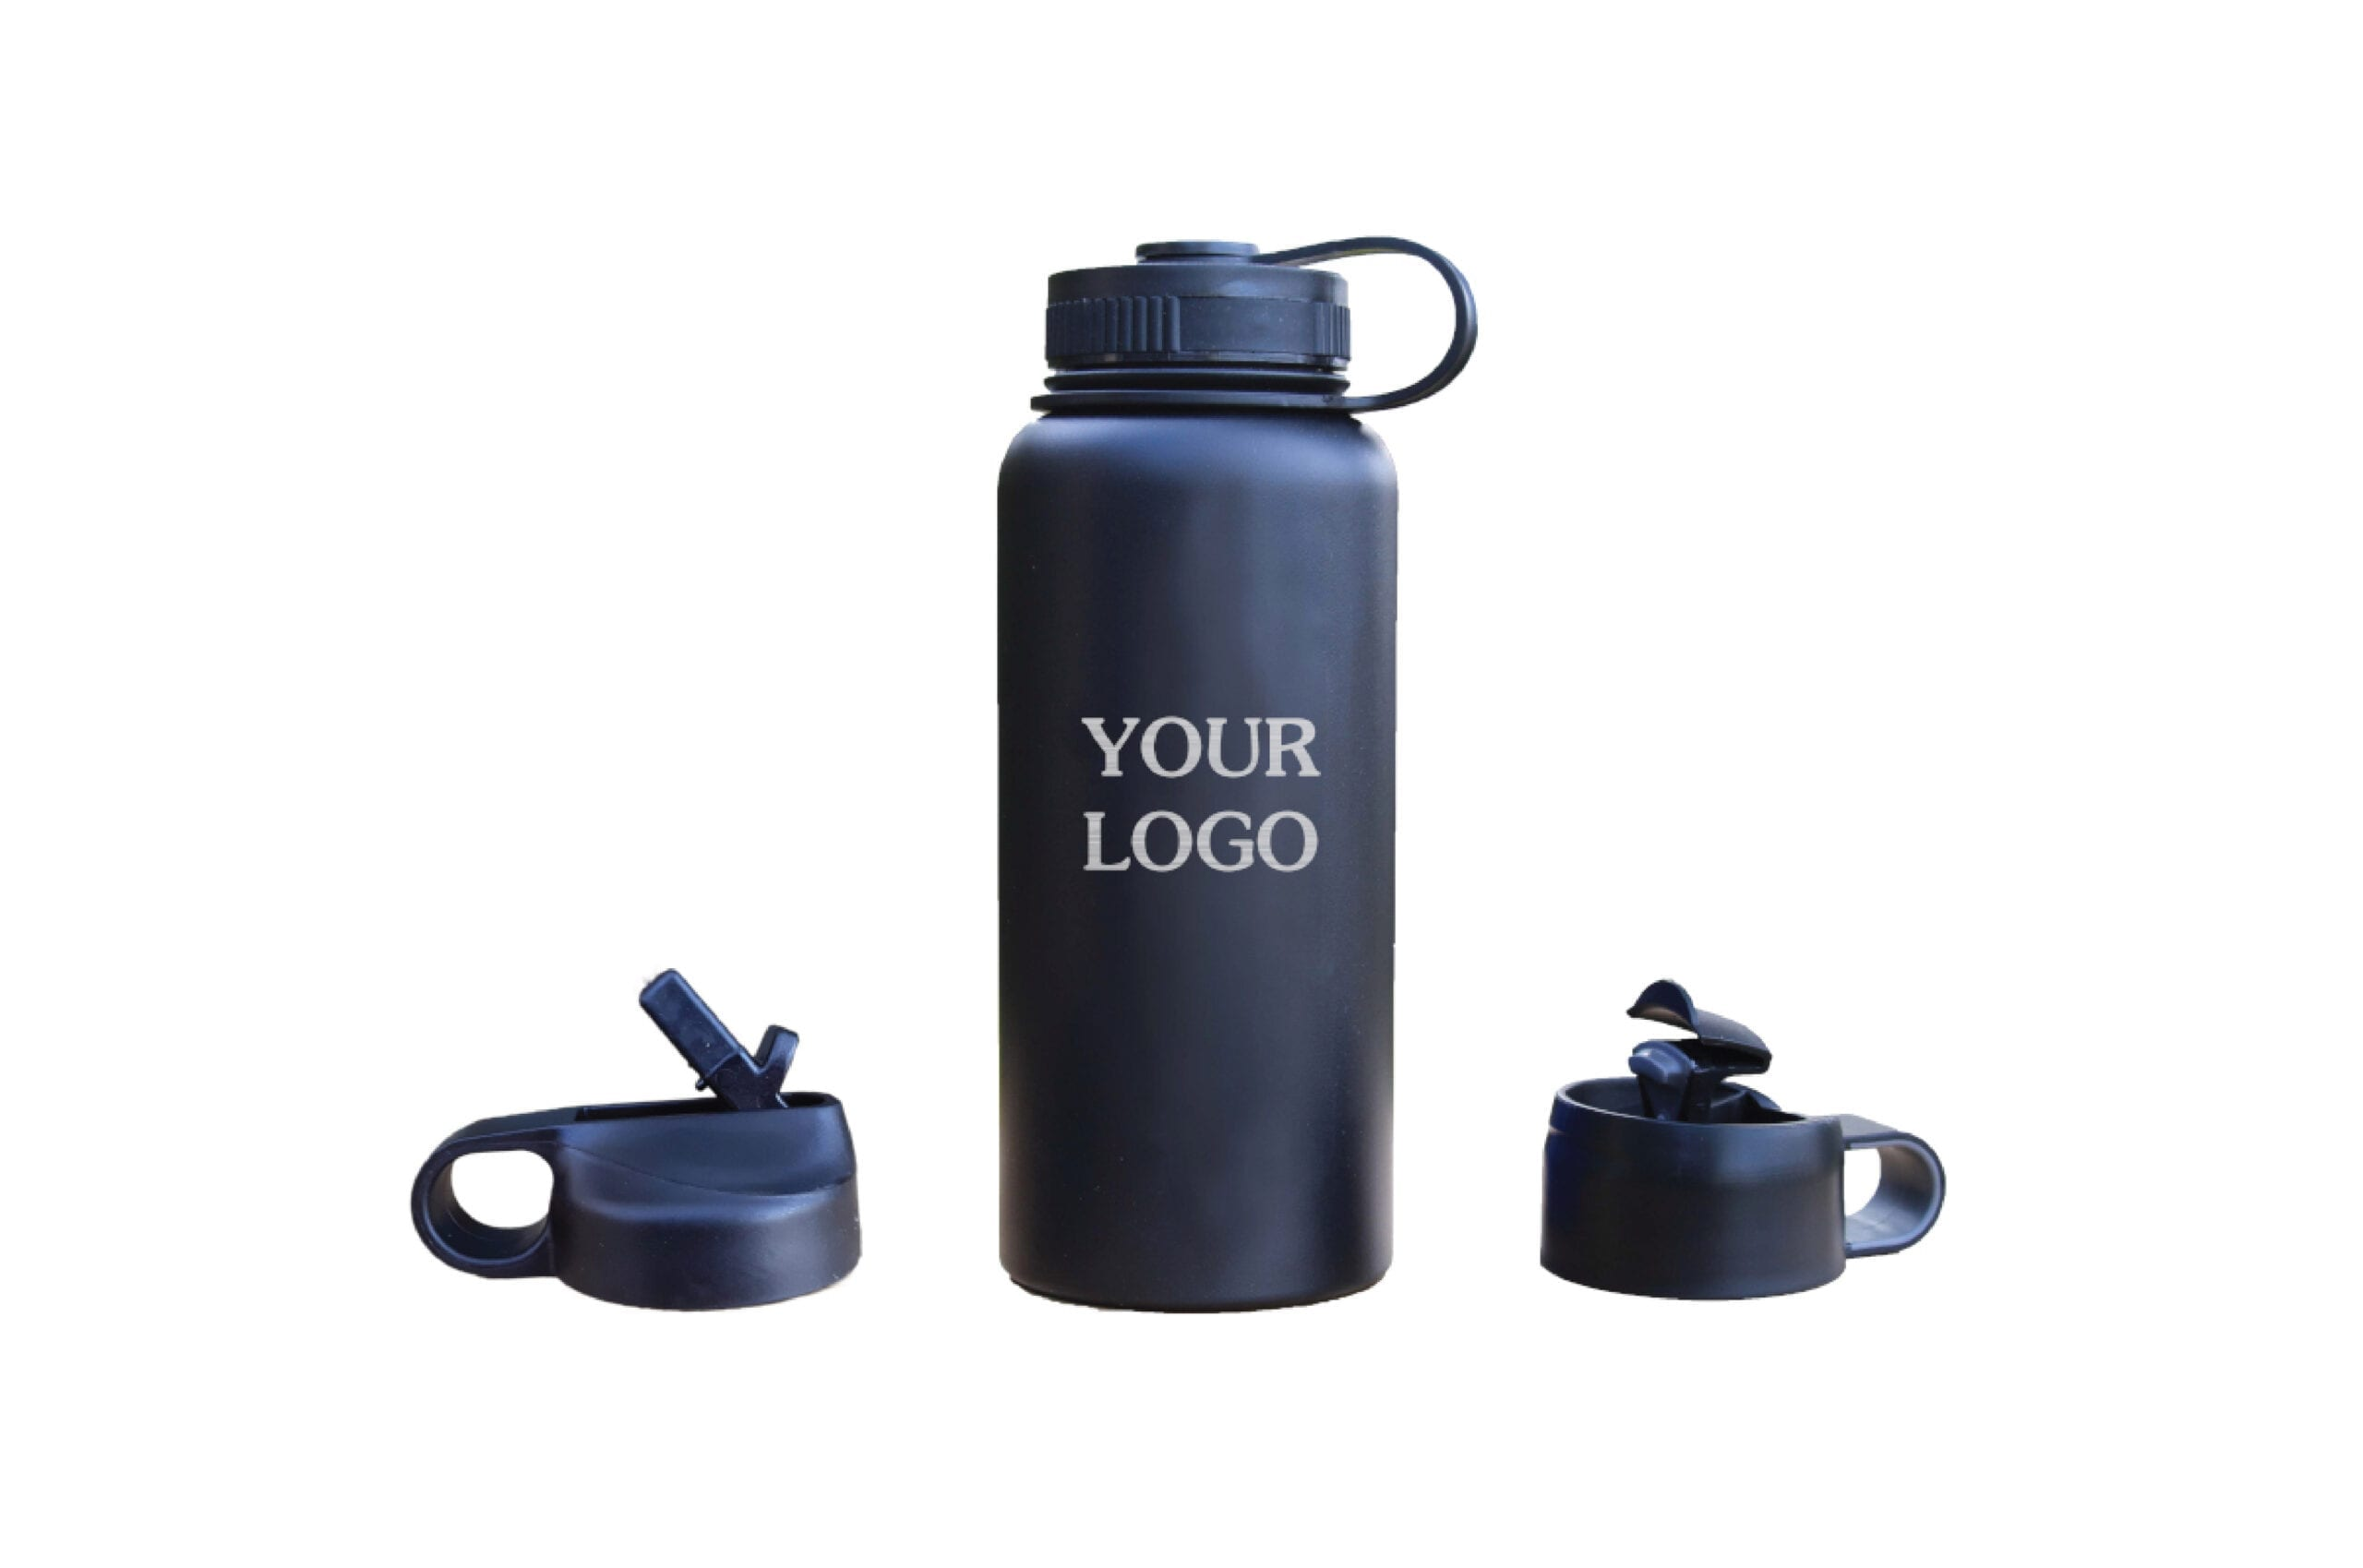 your logo black bottle